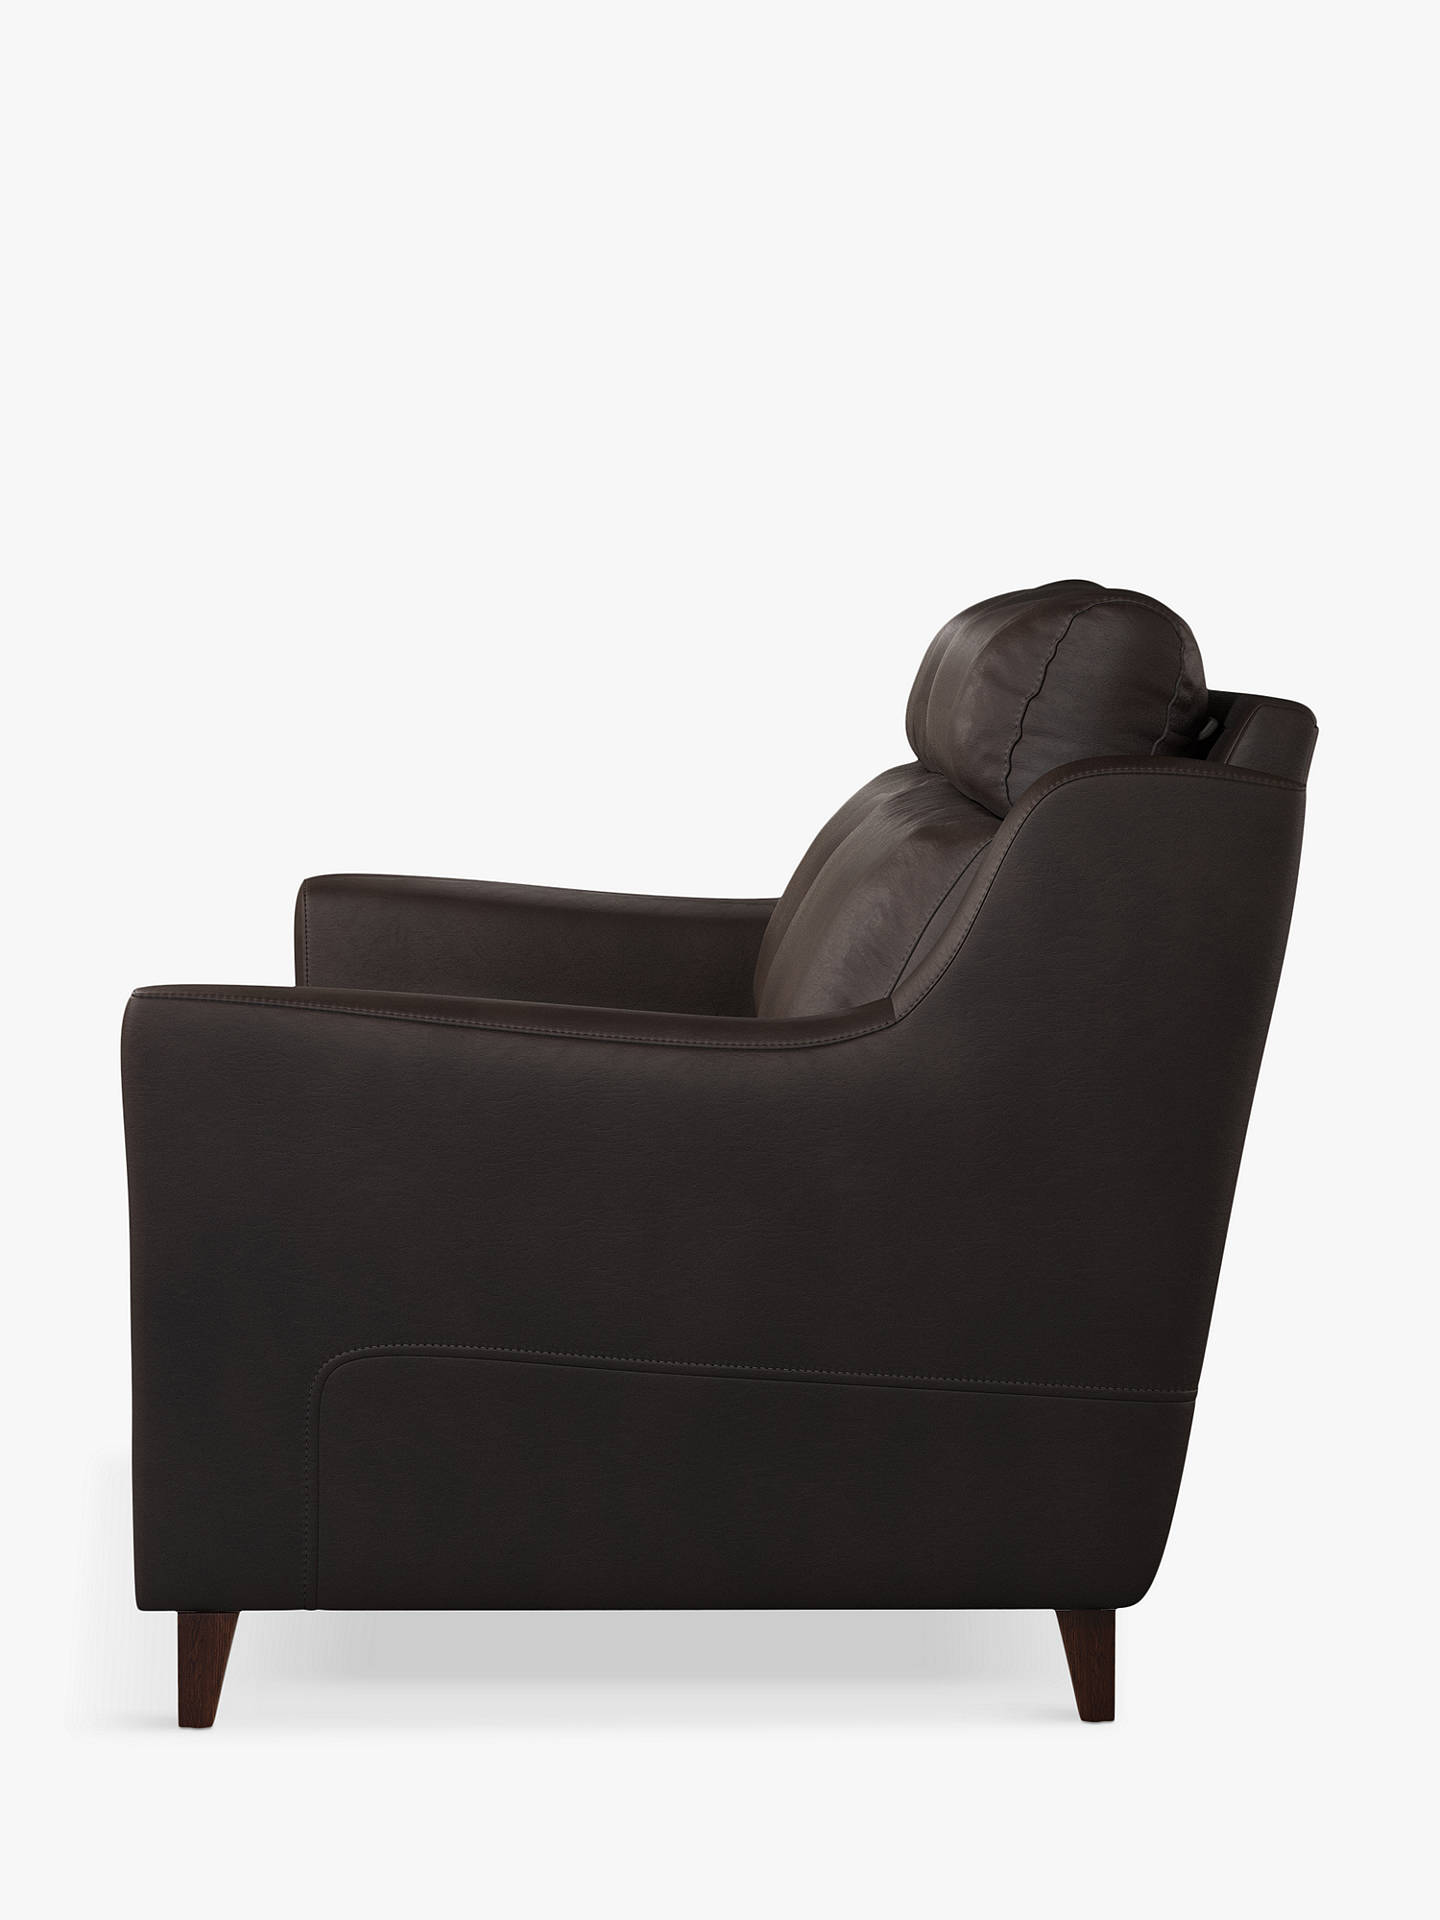 Buy John Lewis & Partners Camber Grand 4 Seater Leather Sofa, Dark Leg, Contempo Dark Chocolate Online at johnlewis.com